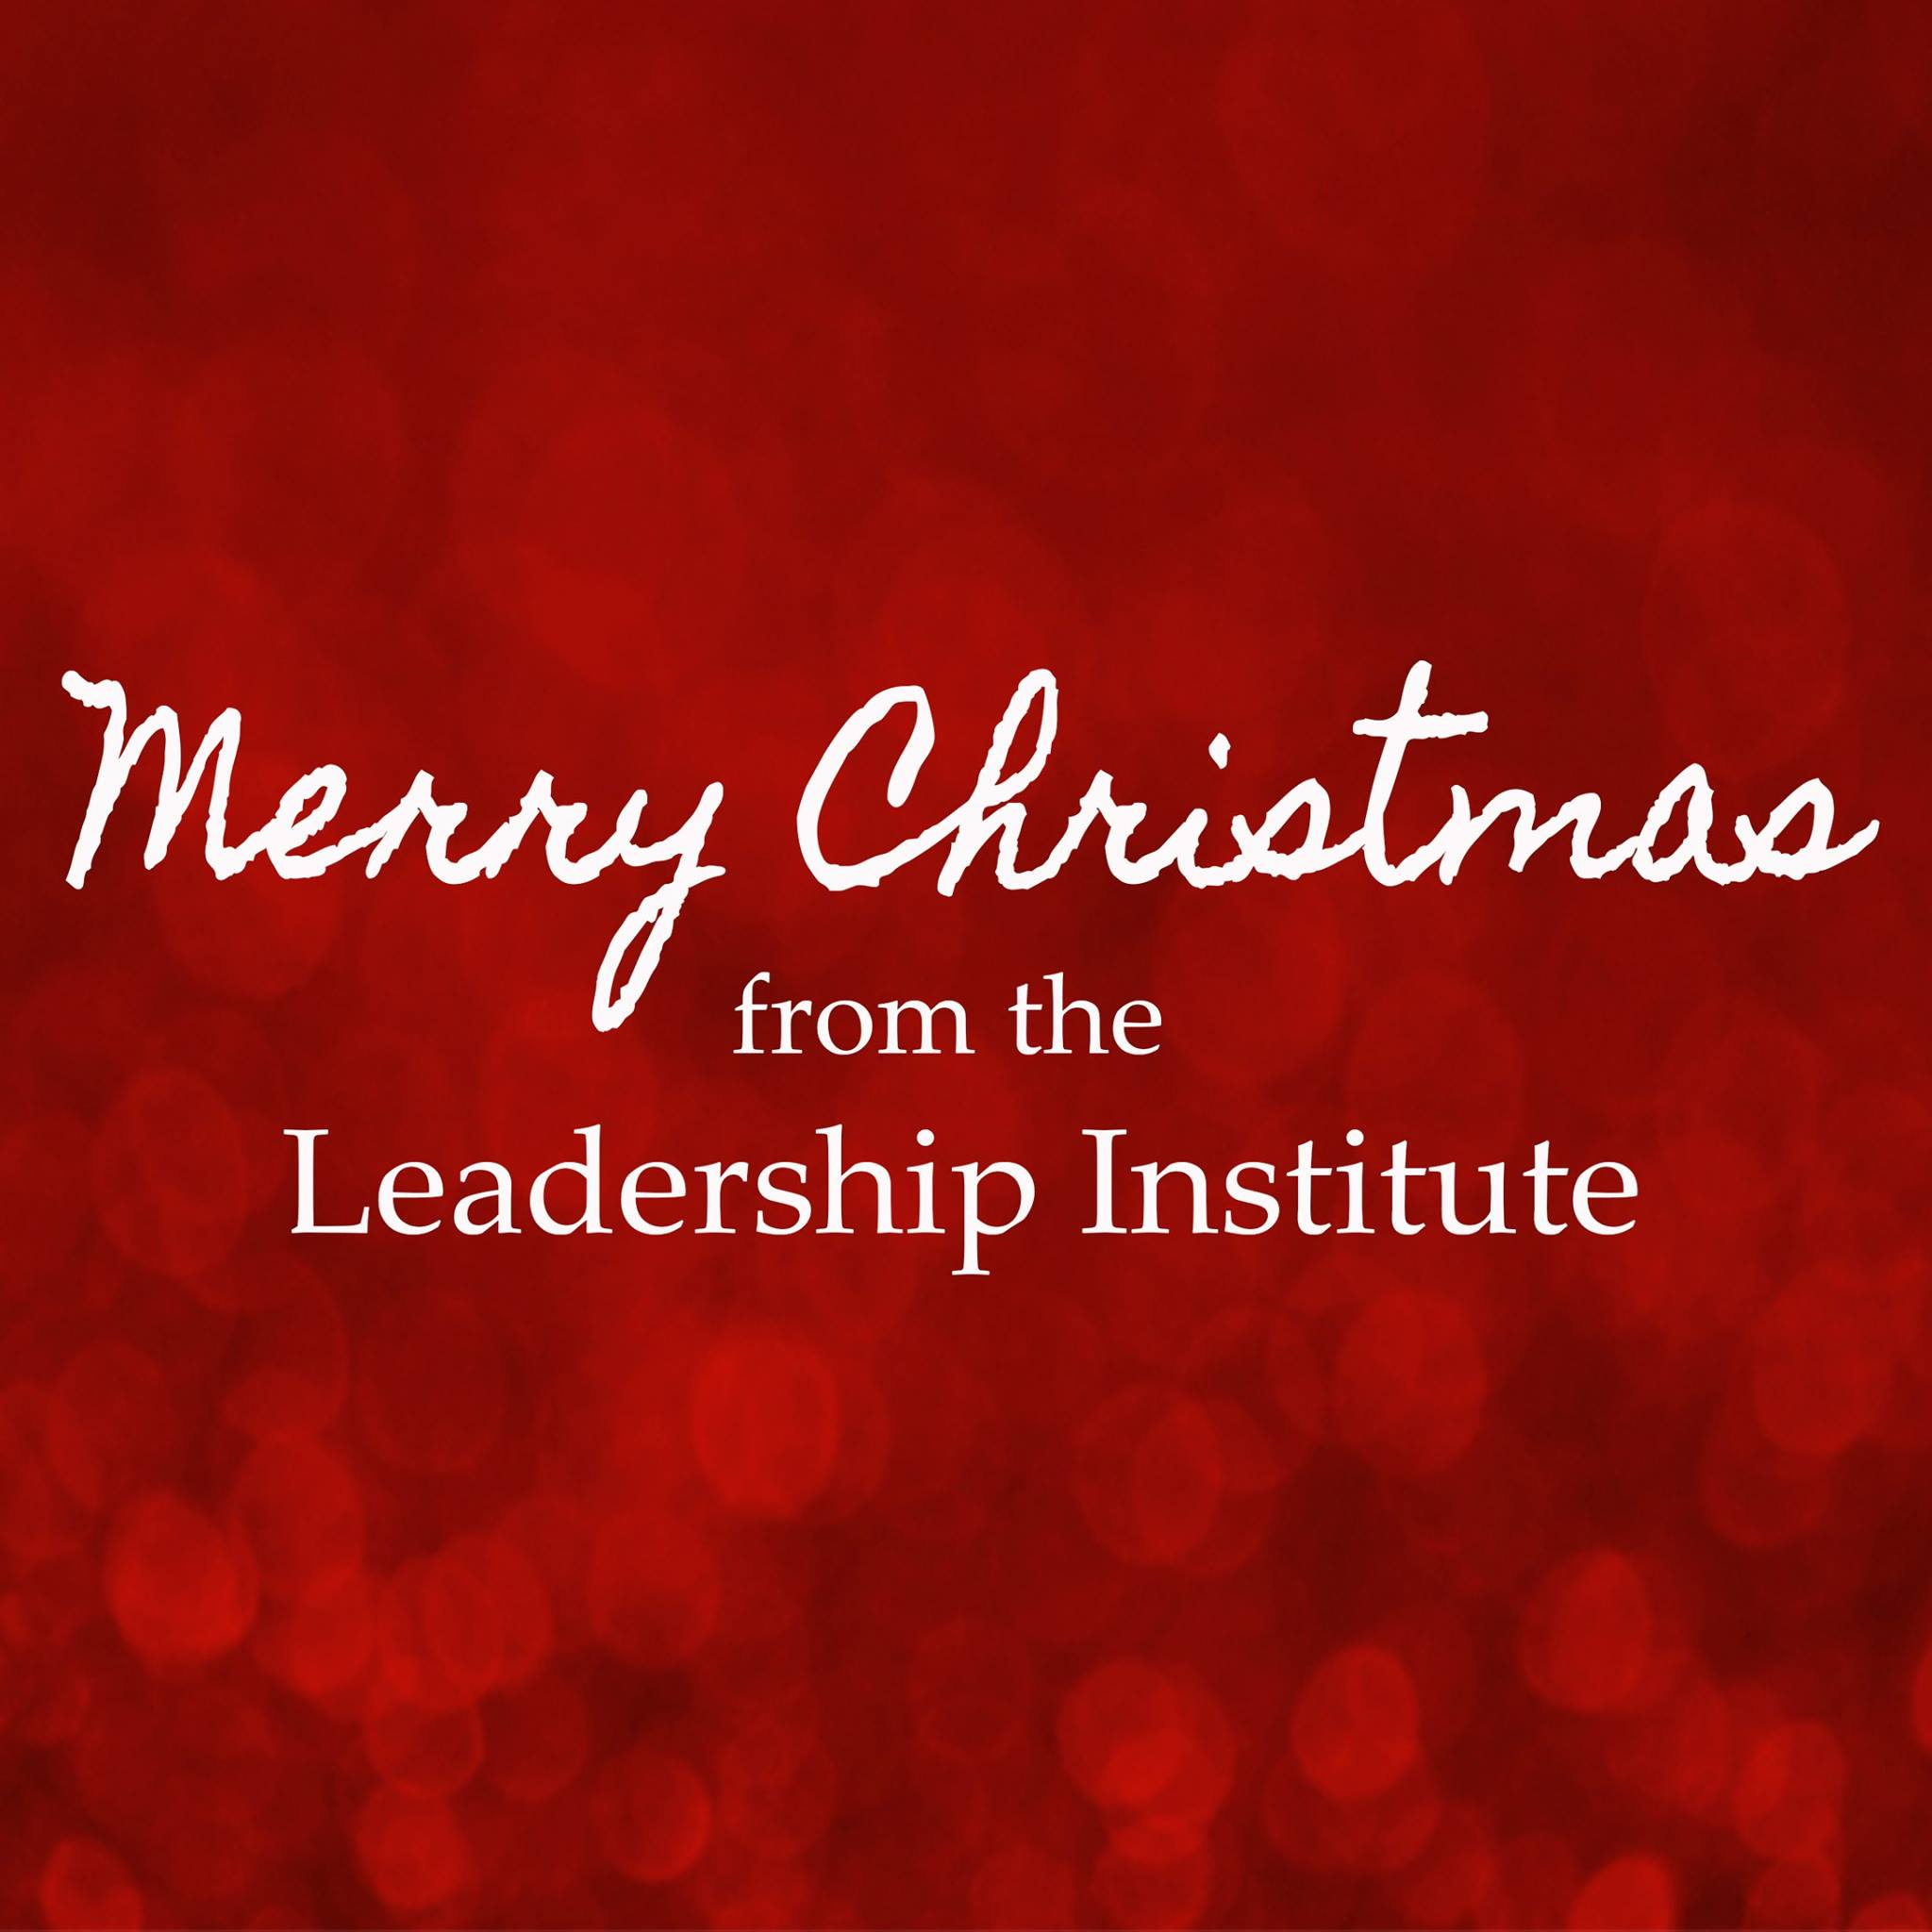 Merry Christmas from the Leadership Institute!